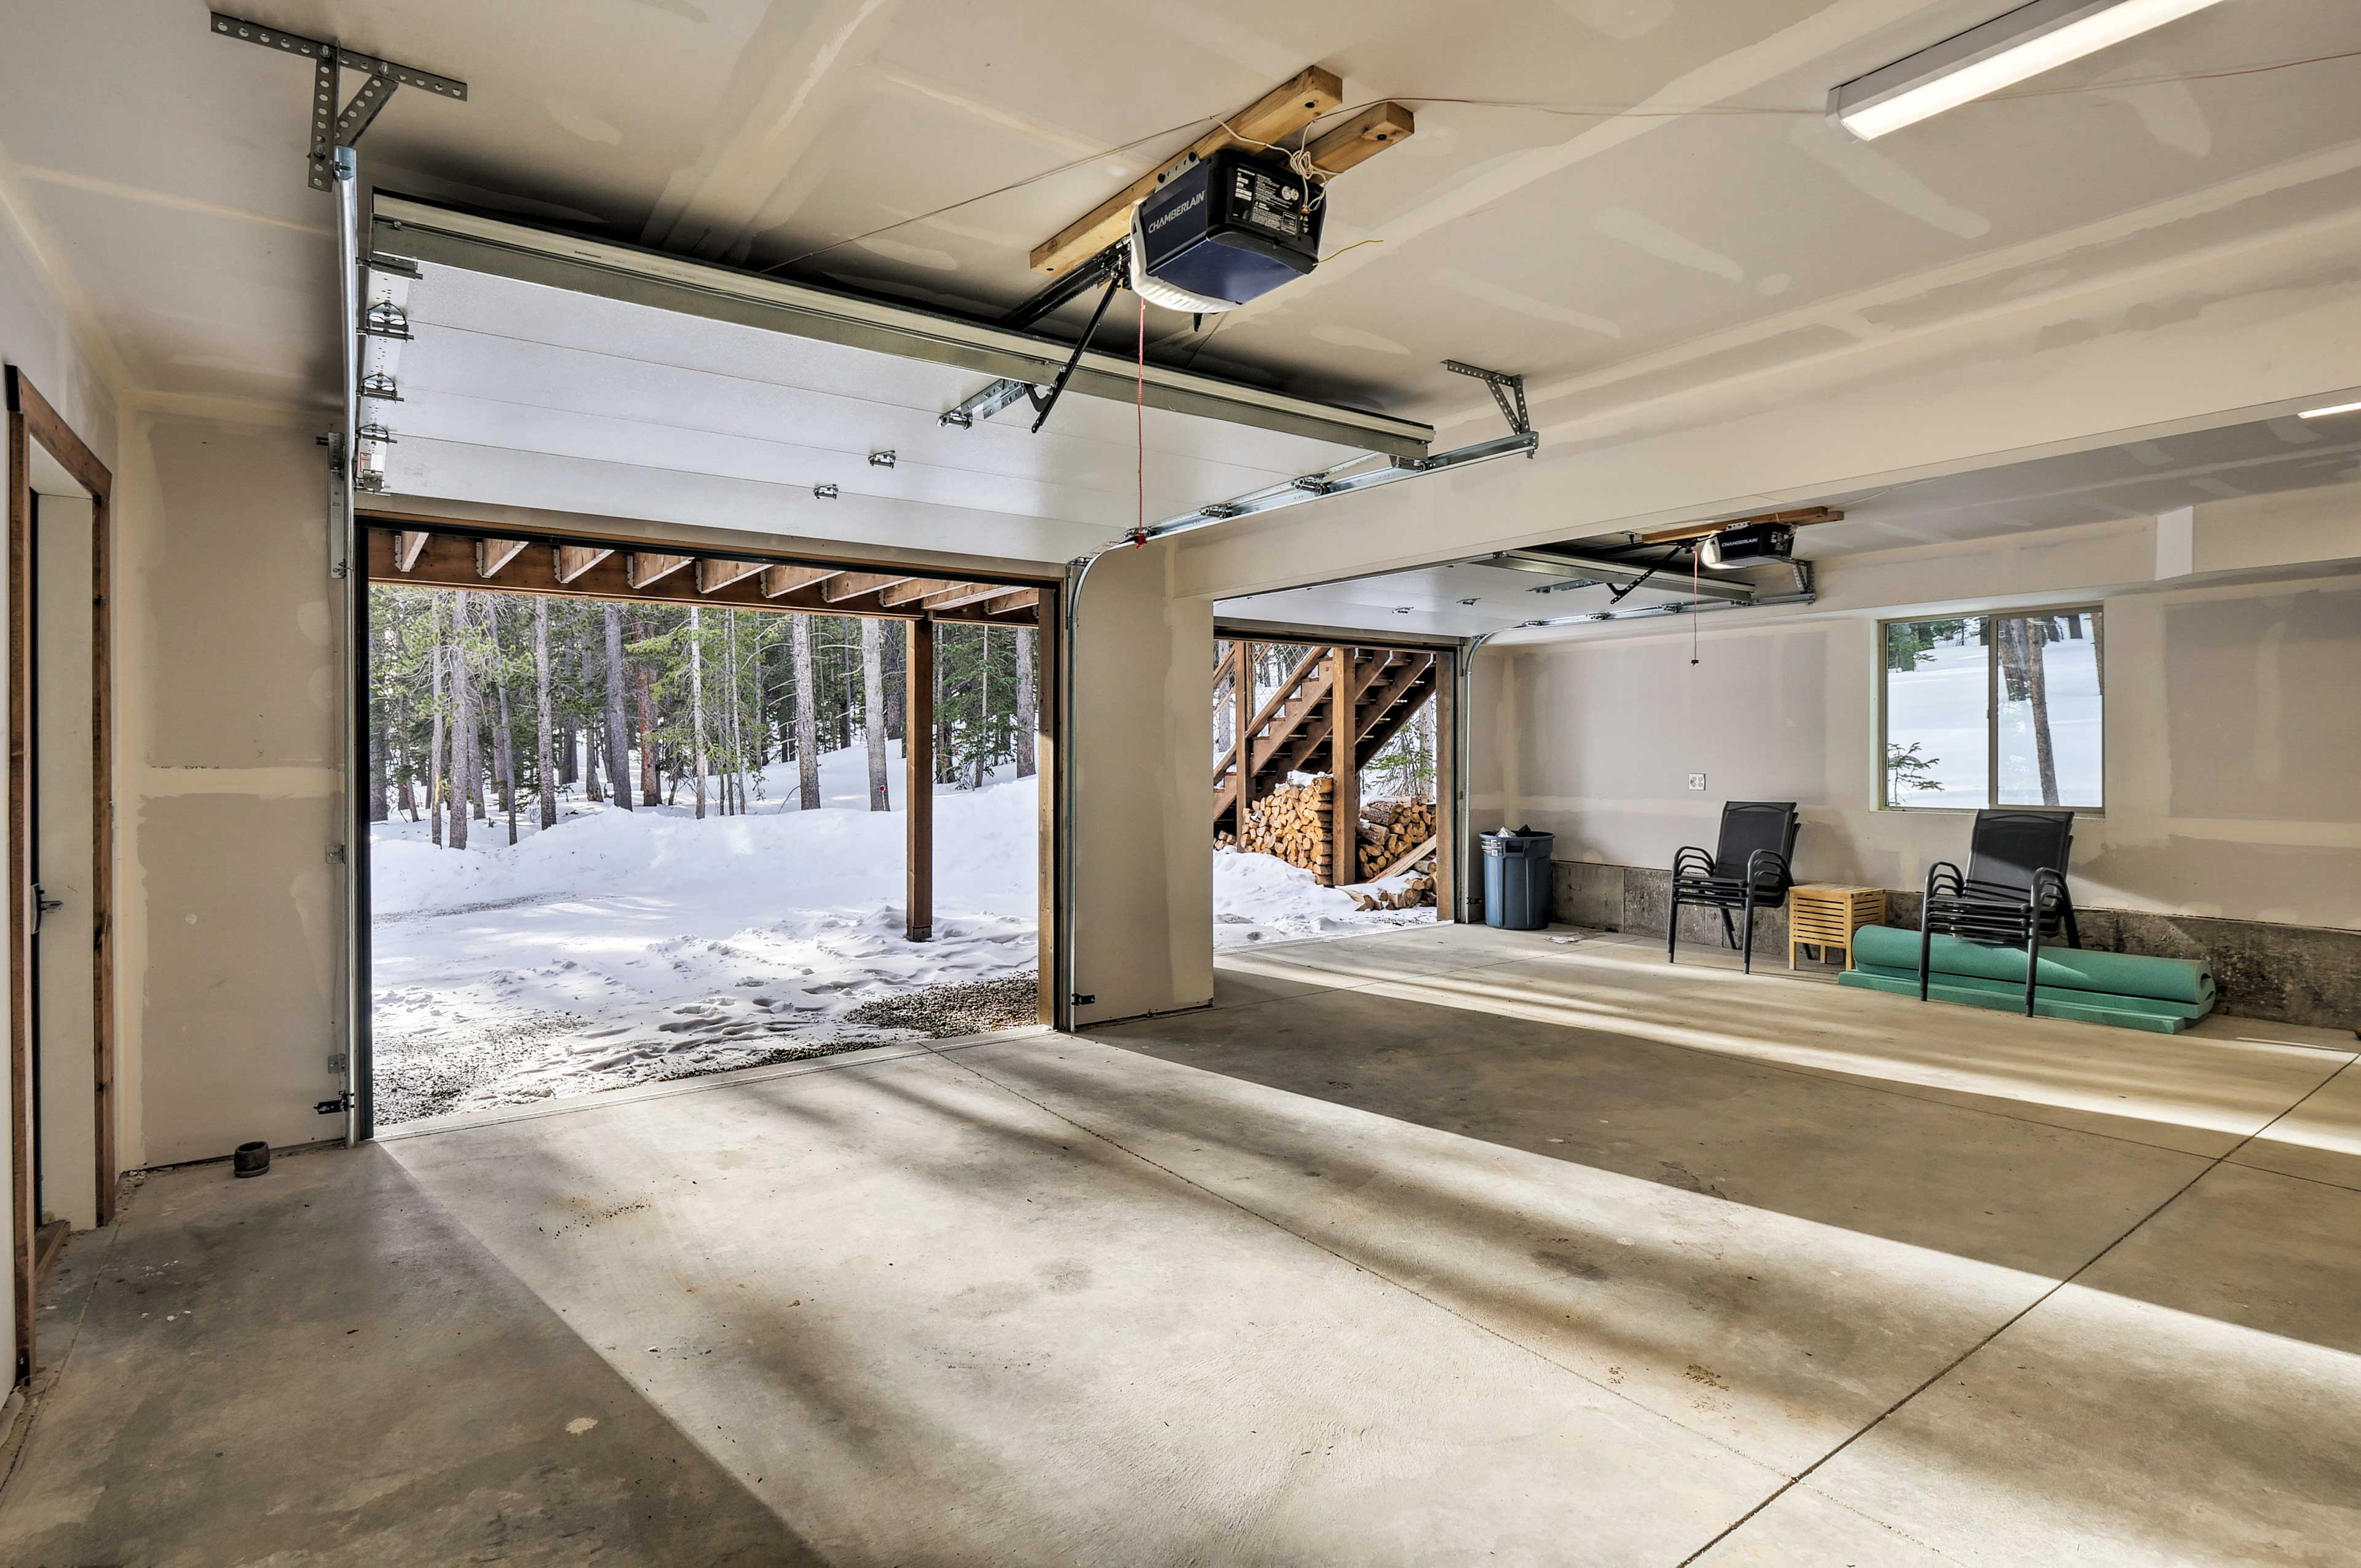 The heated garage has room for 2 vehicles.